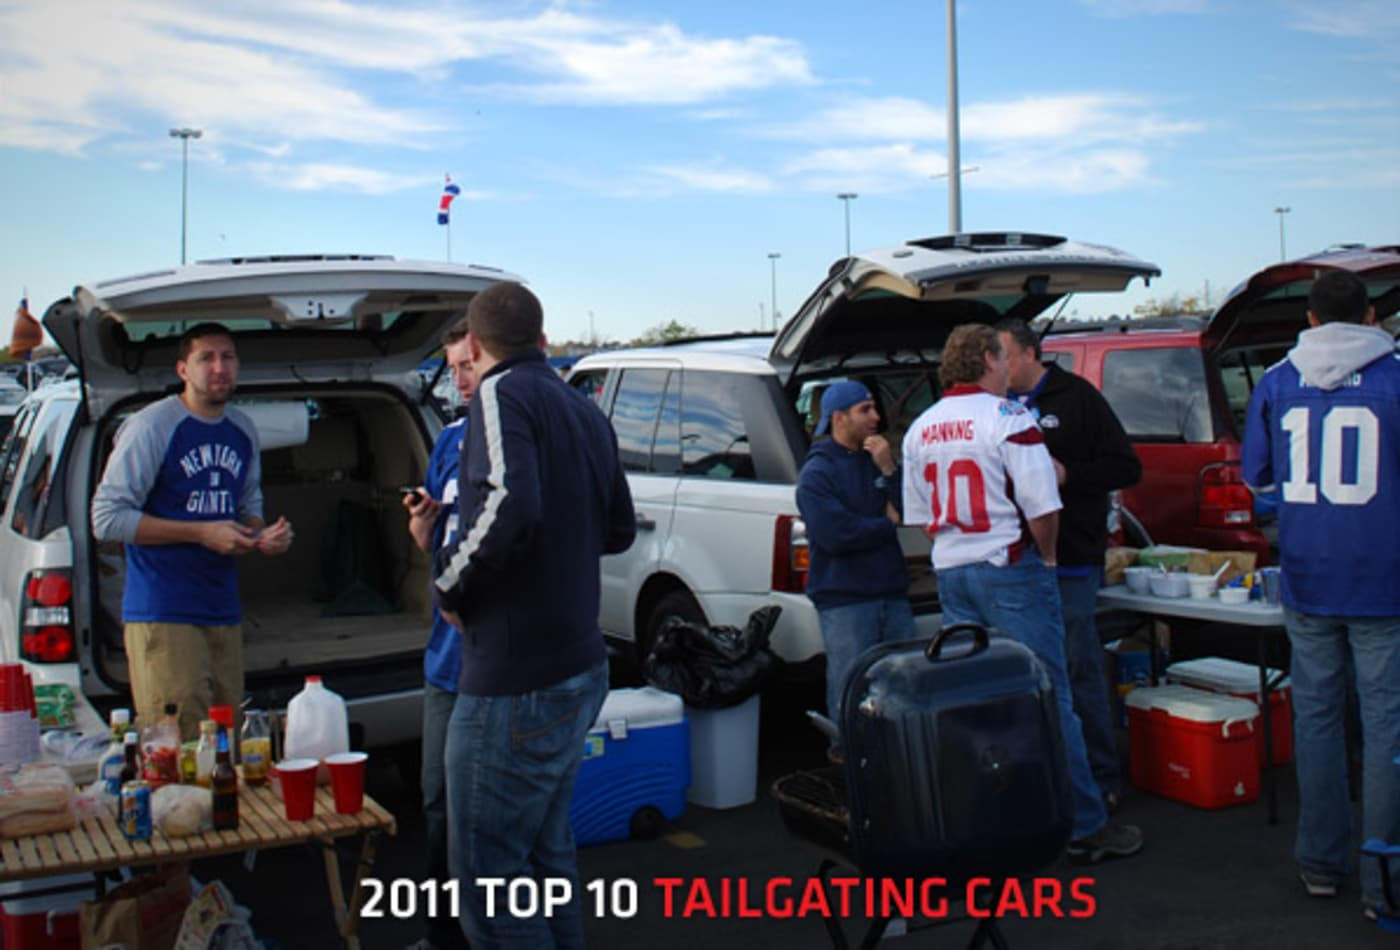 SS_10_Tailgating_Cars_Cover.jpg